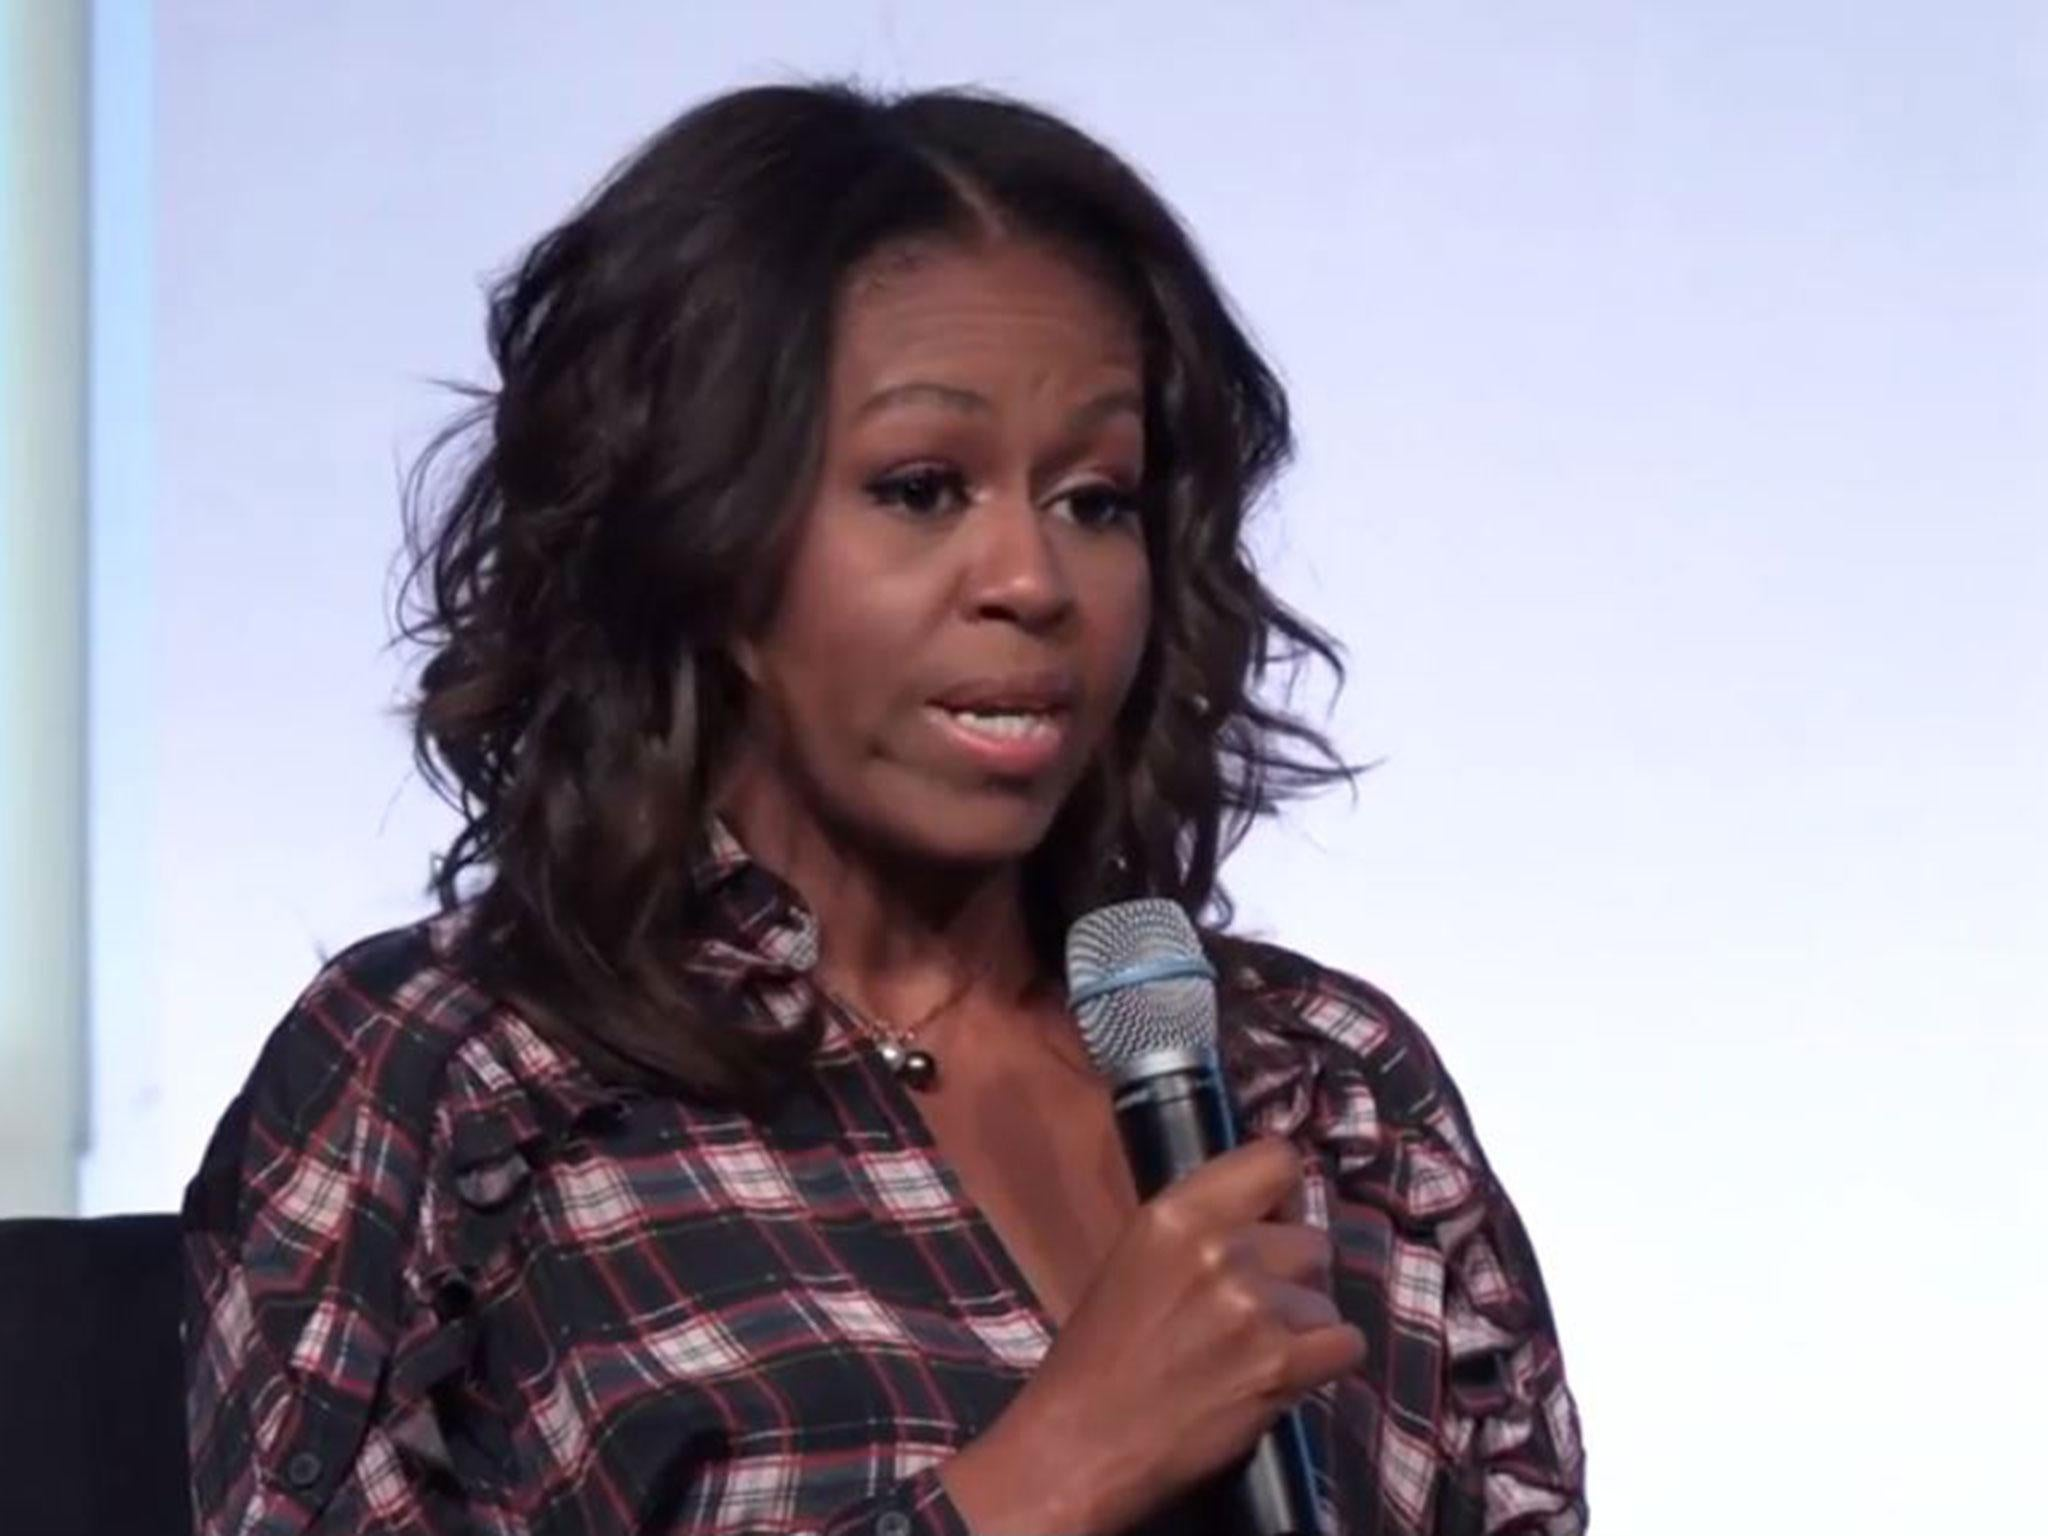 Michelle Obama just said some very powerful words against Donald Trump Michelle Obama just said some very powerful words against Donald Trump new photo